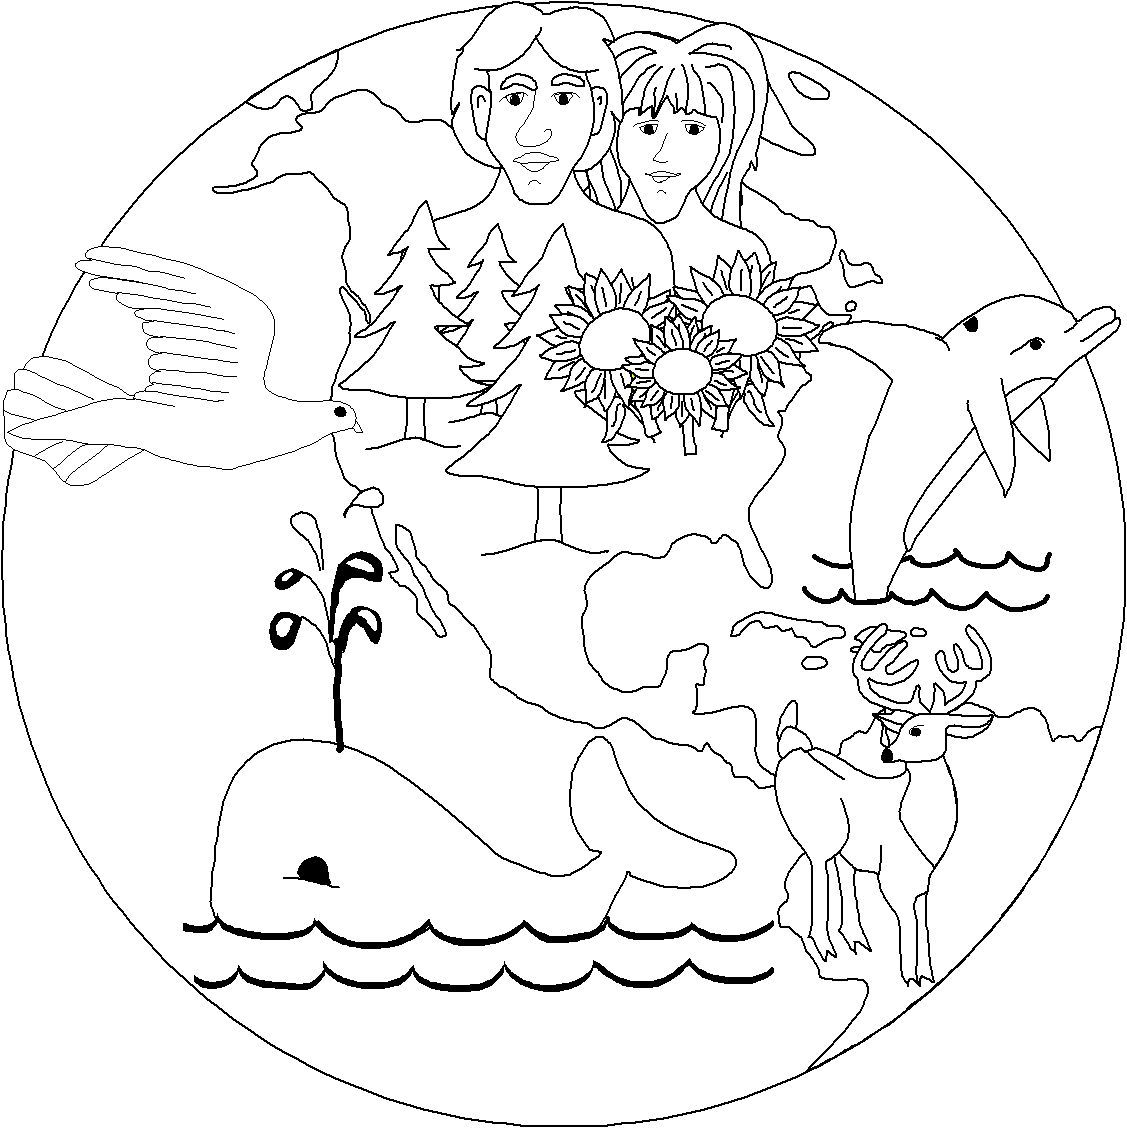 Mothers day coloring pages christian - Creation Coloring Pages Free Christian Graphics Of Creation Bible Stories For Kids Creation Of All Things